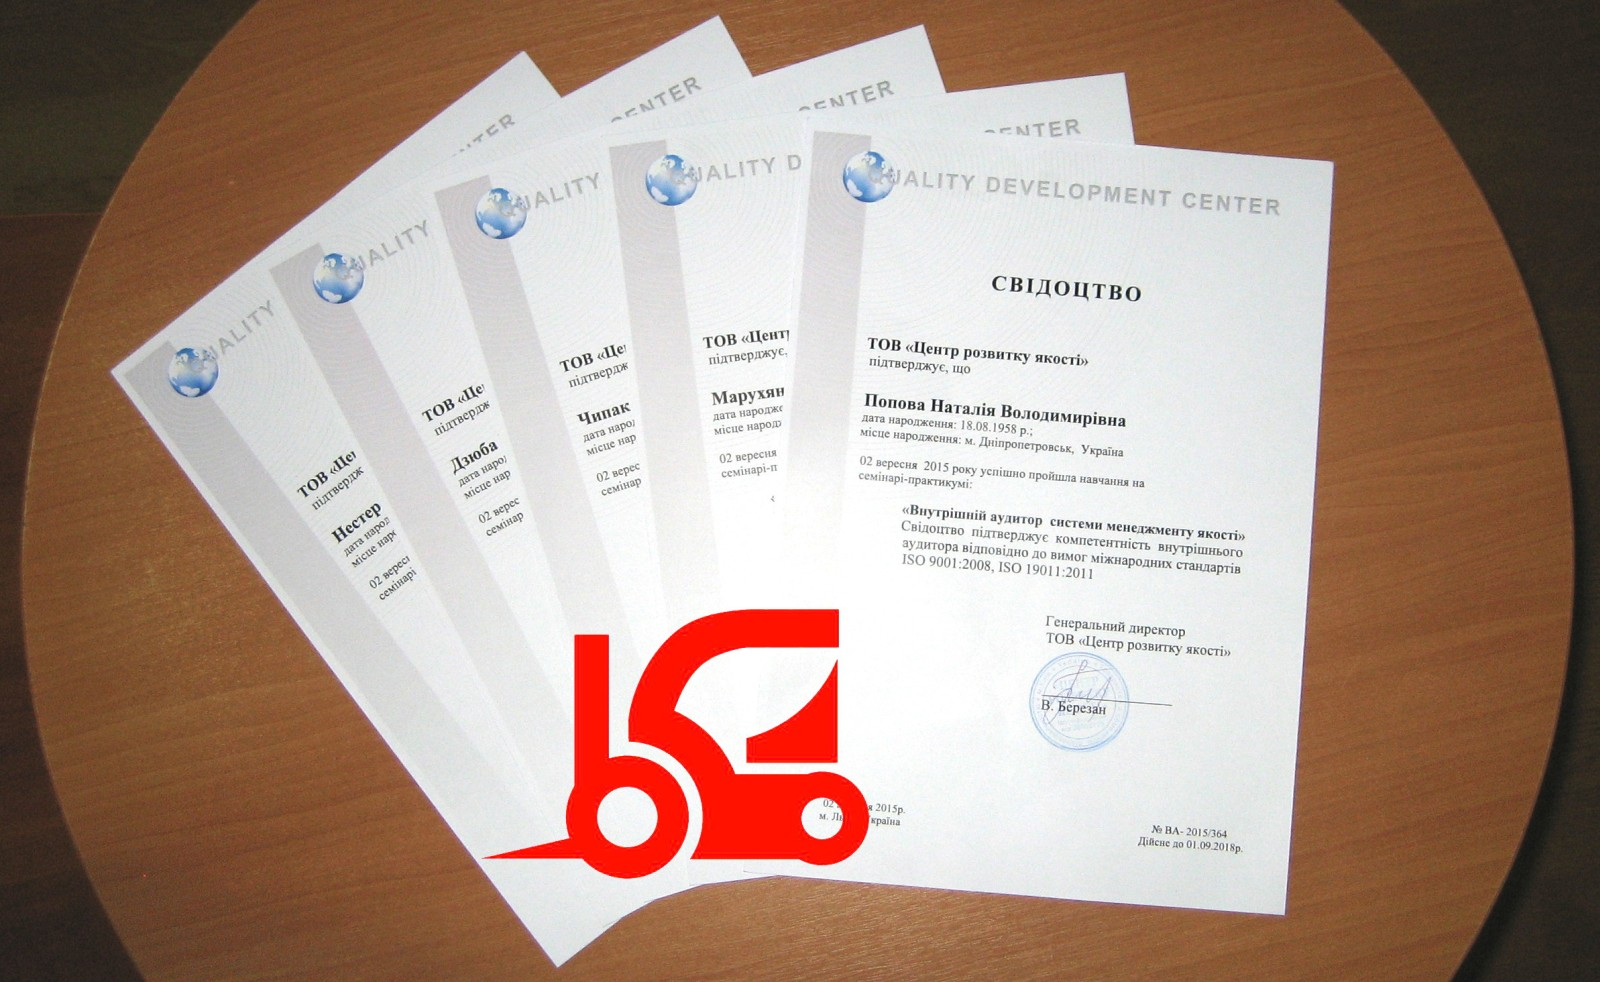 Introduce the quality management system according to ISO 9001:2008